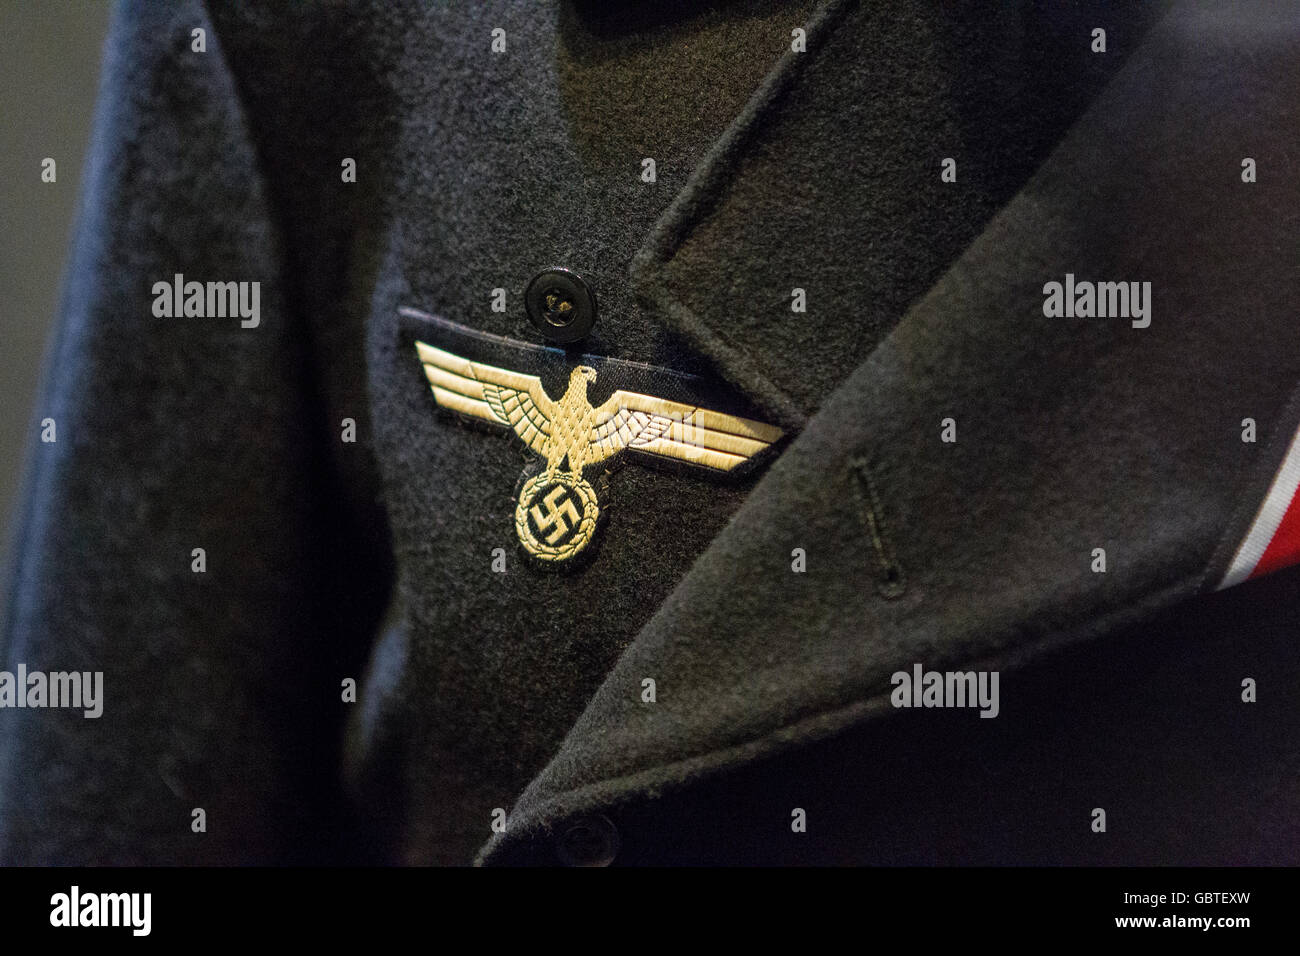 waffen ss german cross eagle tunic insignia badge - Stock Image